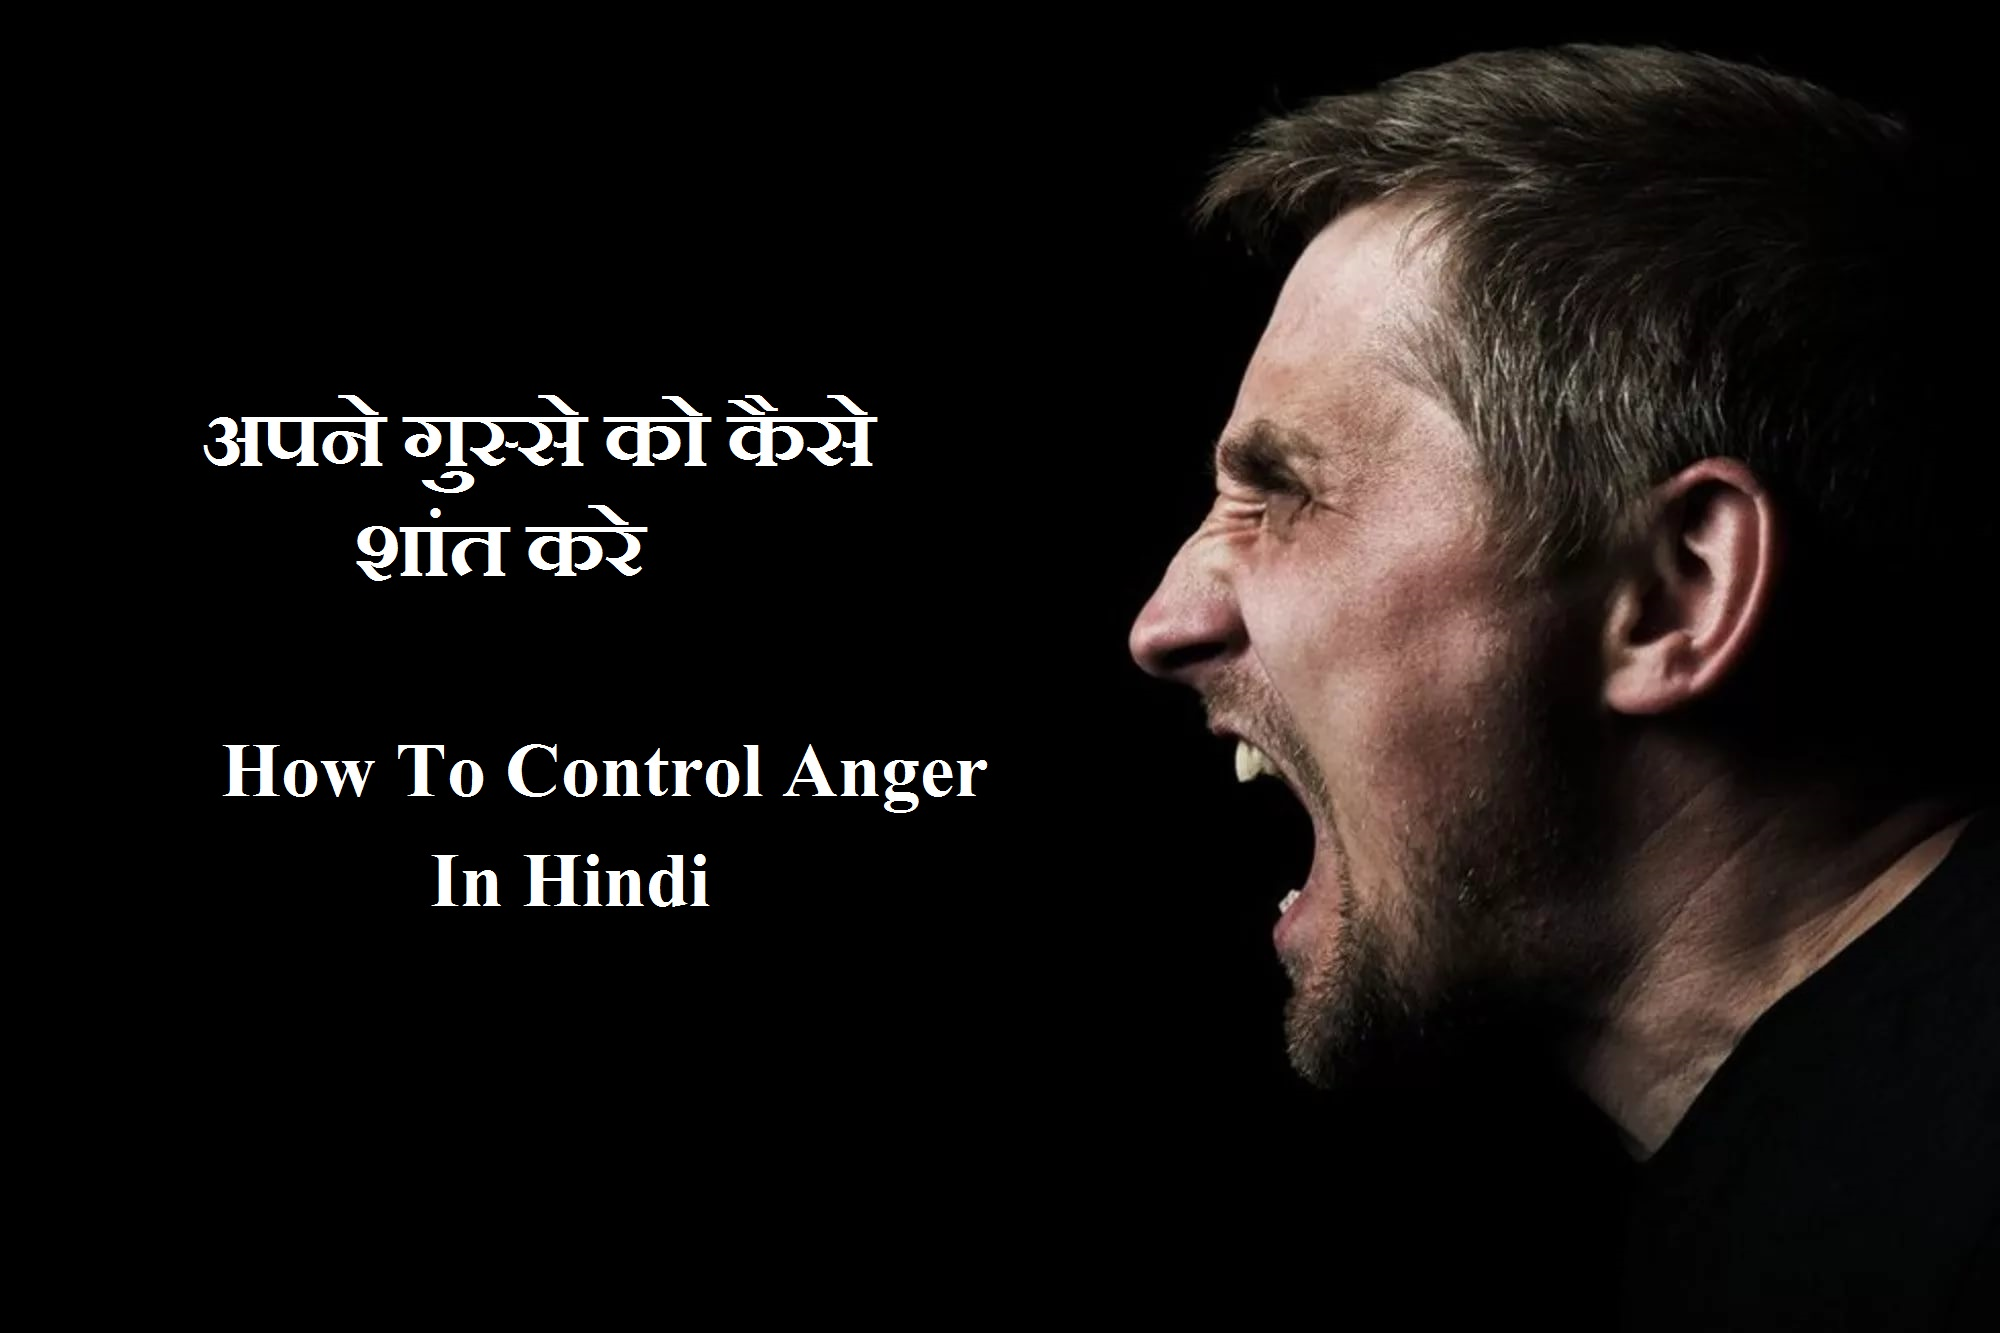 अपने गुस्से को कैसे शांत करे , How To Control Anger Gussa In Hindi, gussa hindi me, gusse ko conytrol kaise kare